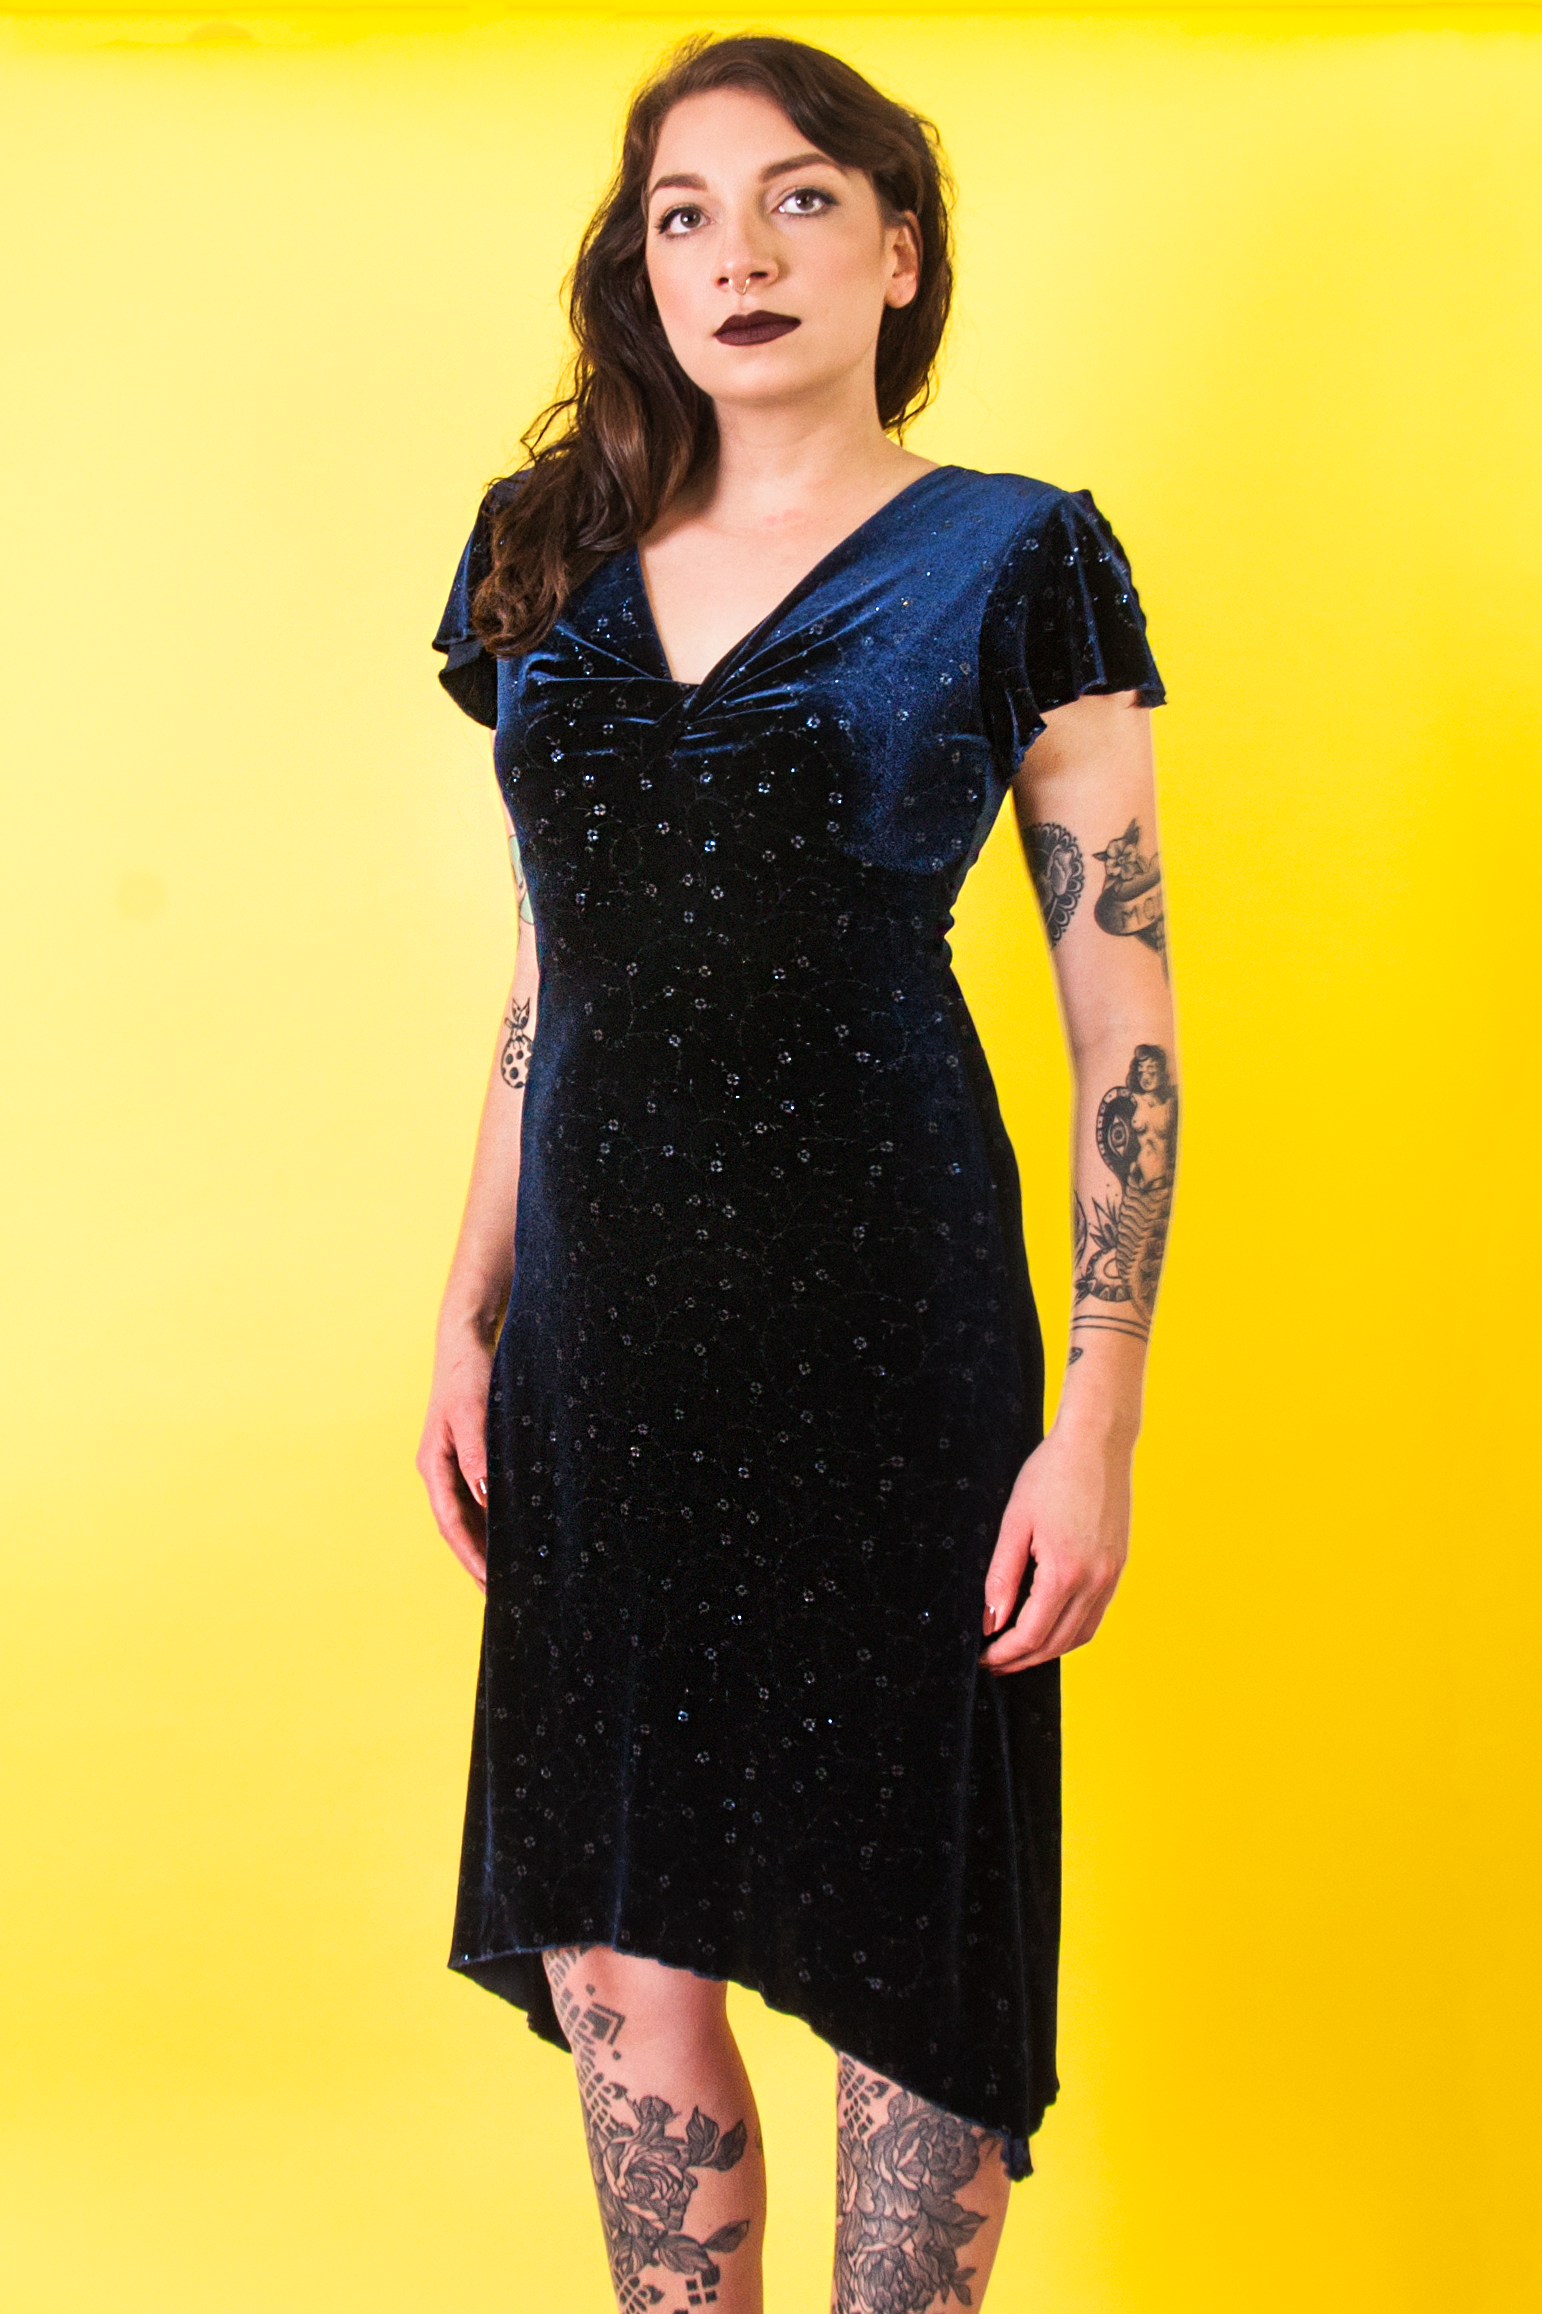 4410fd137 Blue Velvet Dress - Wayne Wardrobe - Vintage + Luxury